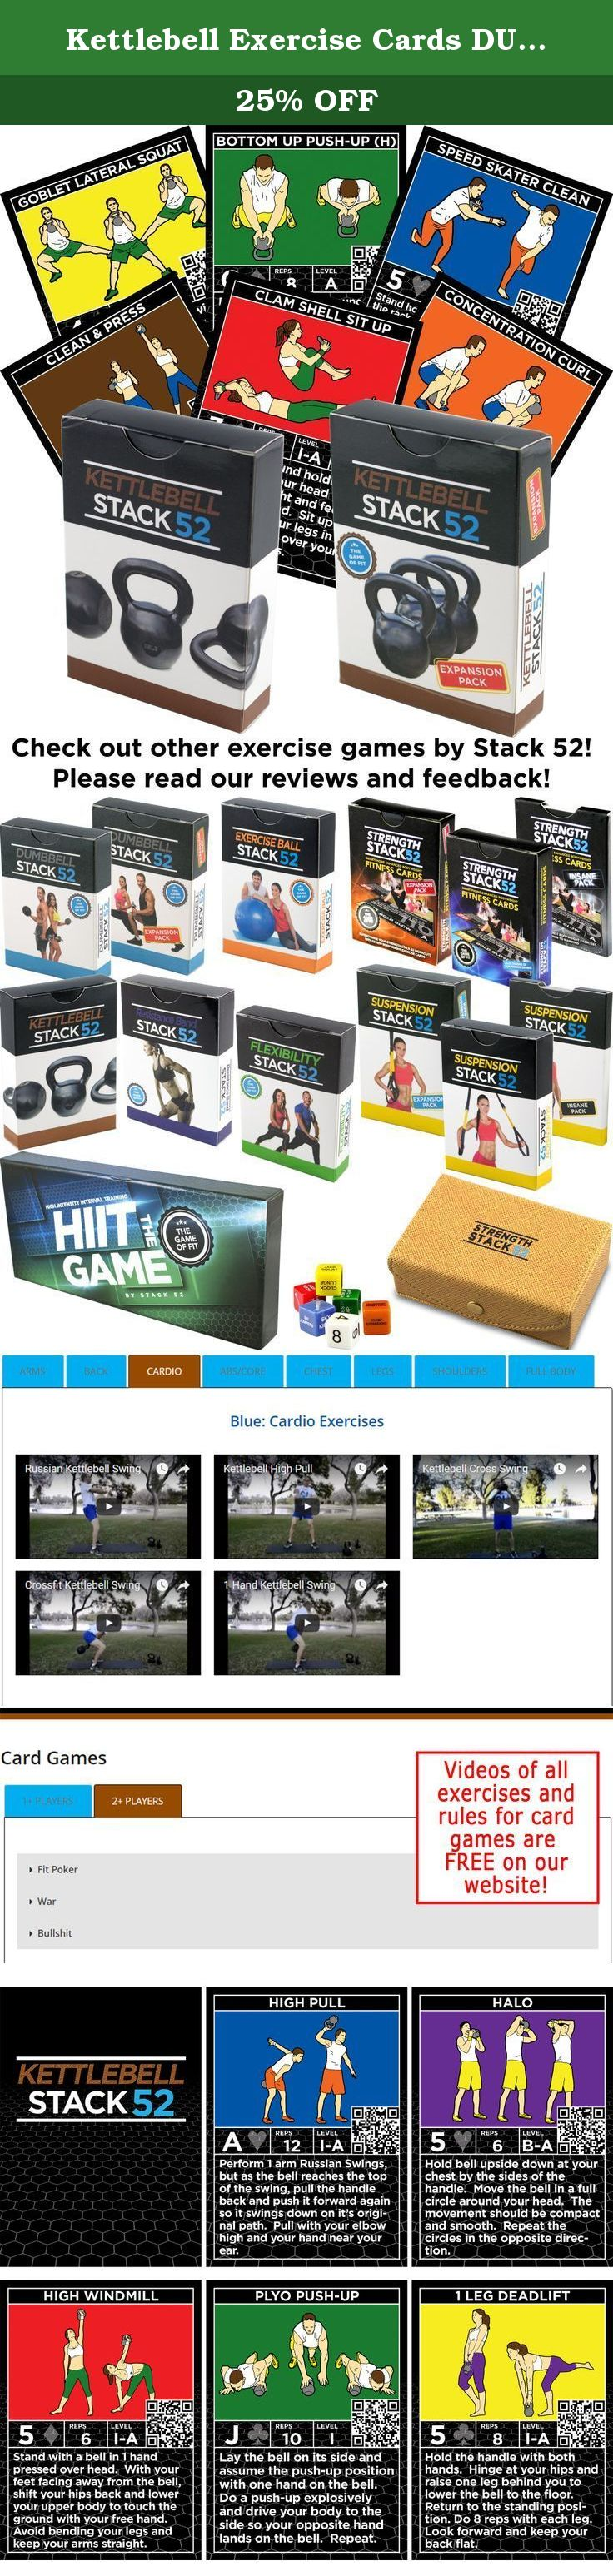 Kettlebell Exercise Cards DUO Pack by Stack 52. Kettlebell